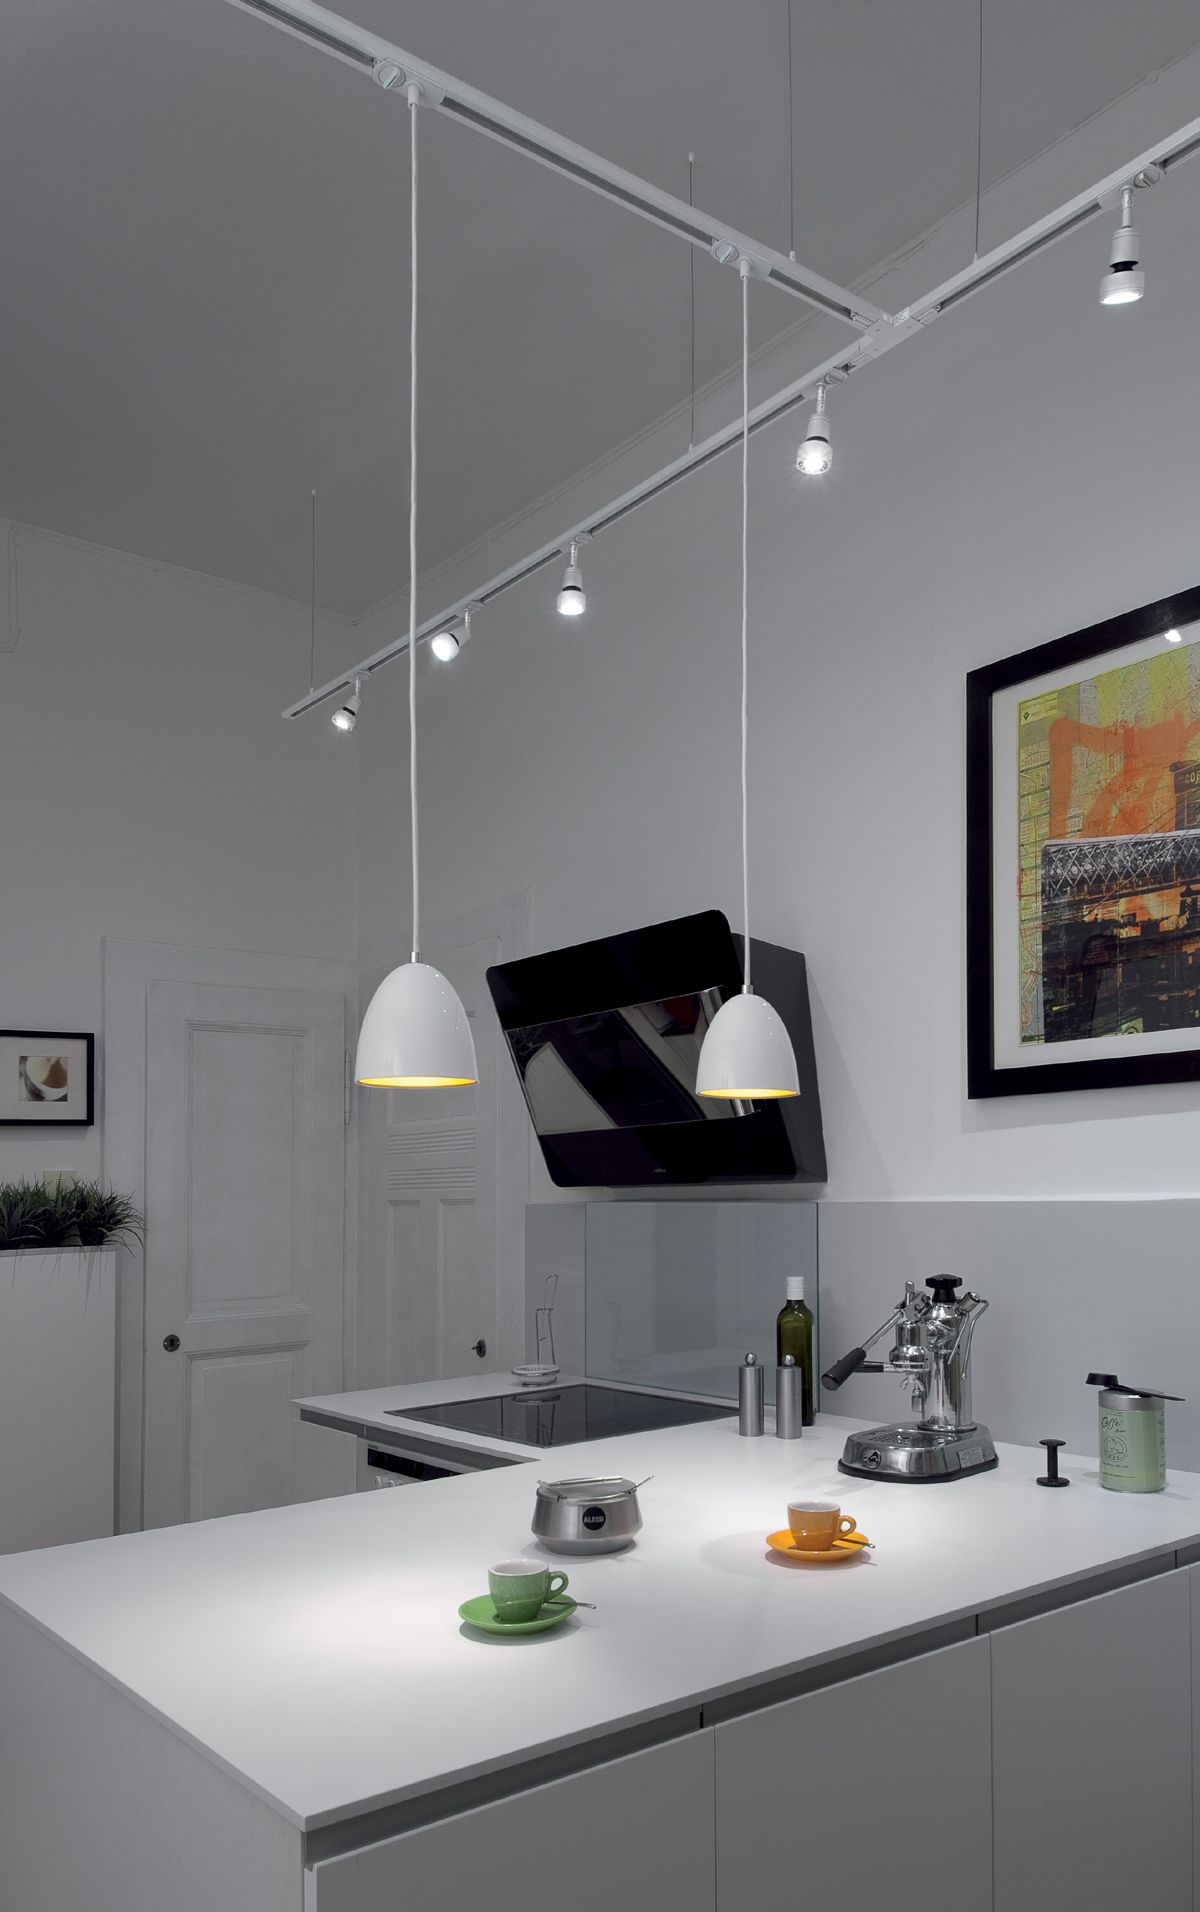 Single circuit track system pinteres kitchen track lighting aloadofball Gallery